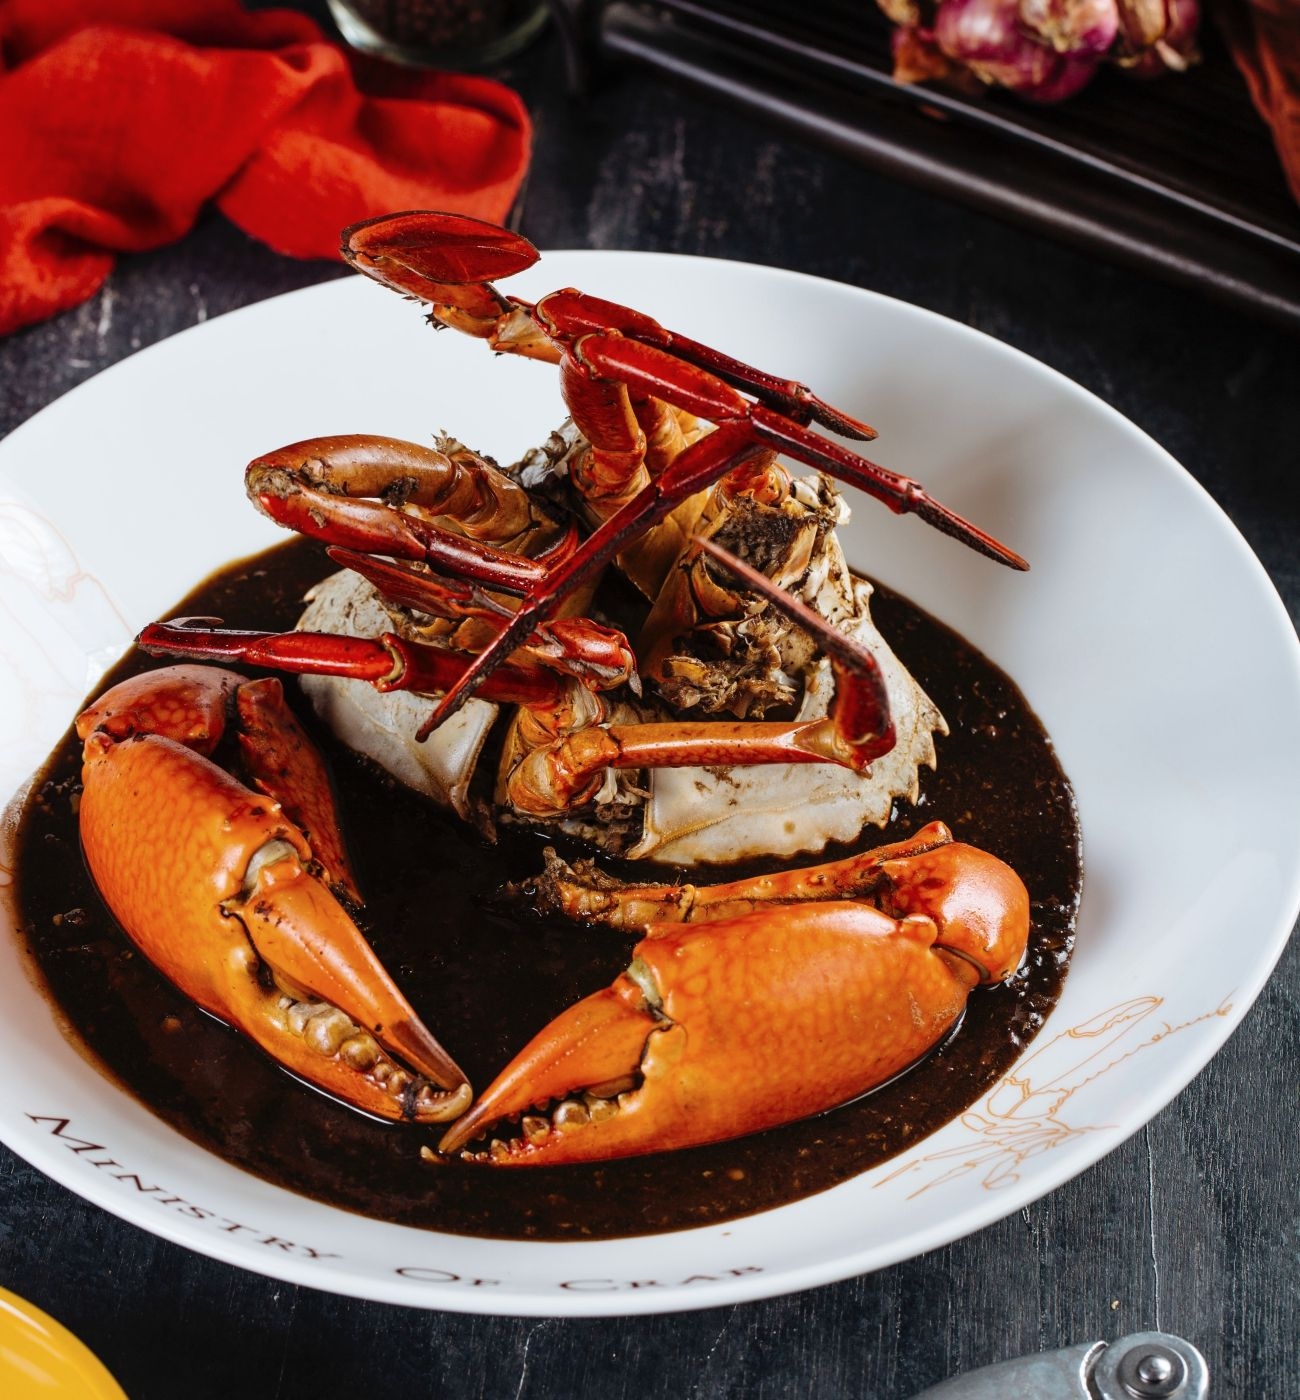 Craving Crustaceans? Ministry of Crab Opens Its Doors In Manila